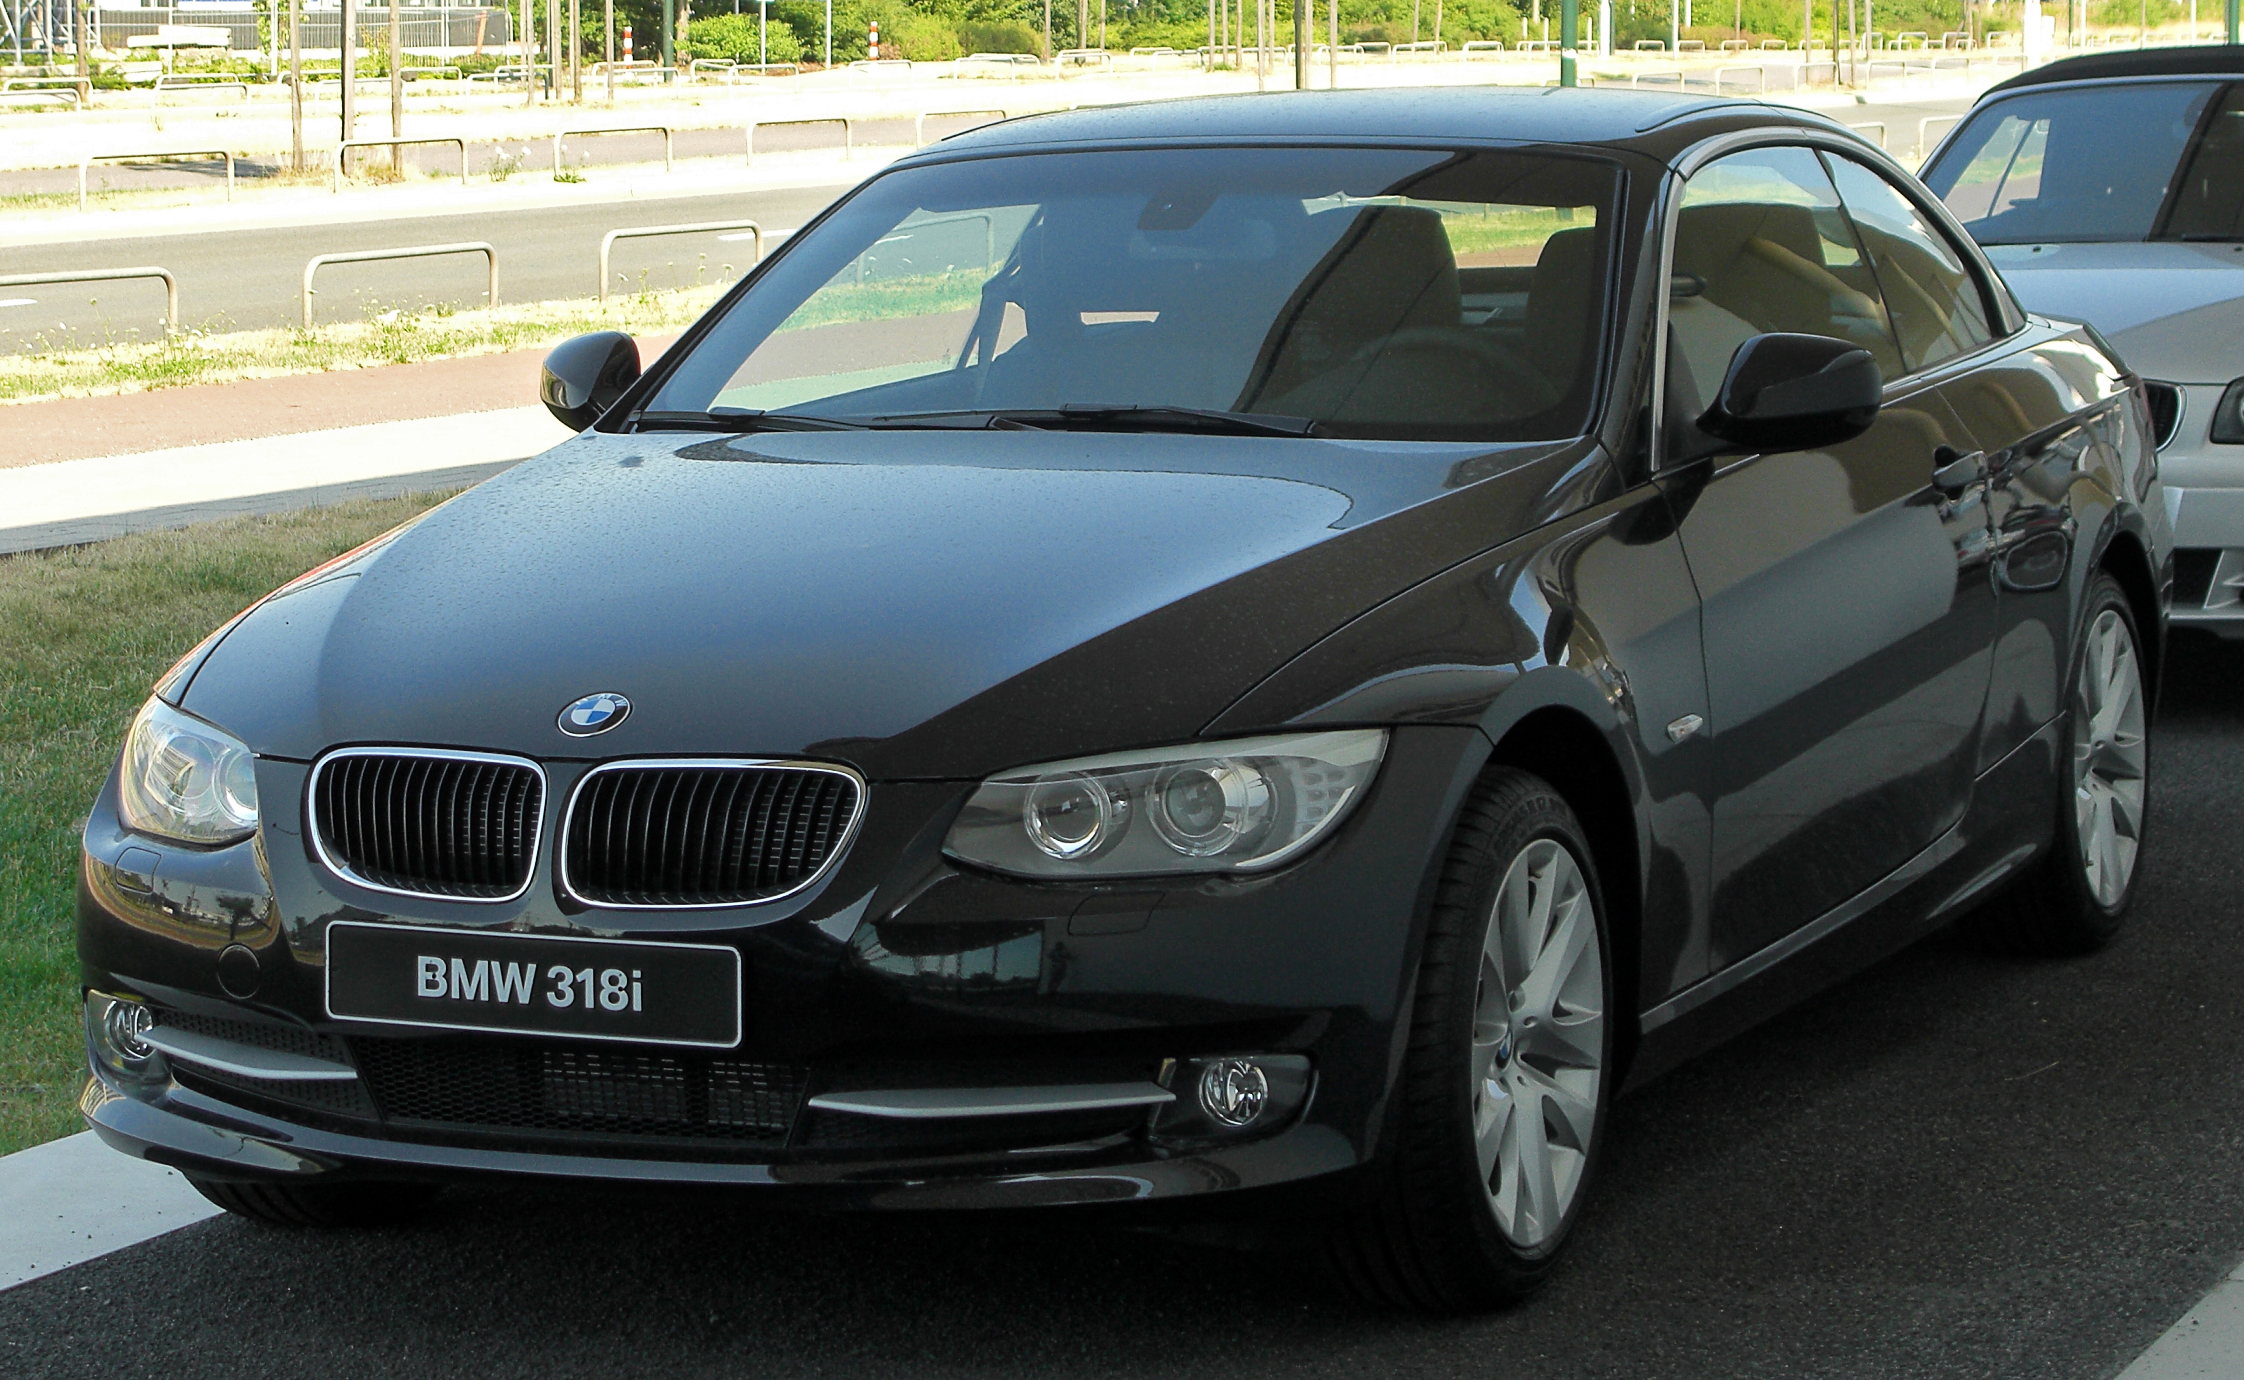 Bmw 318i Coupe 2010 Car Photos Catalog 2019